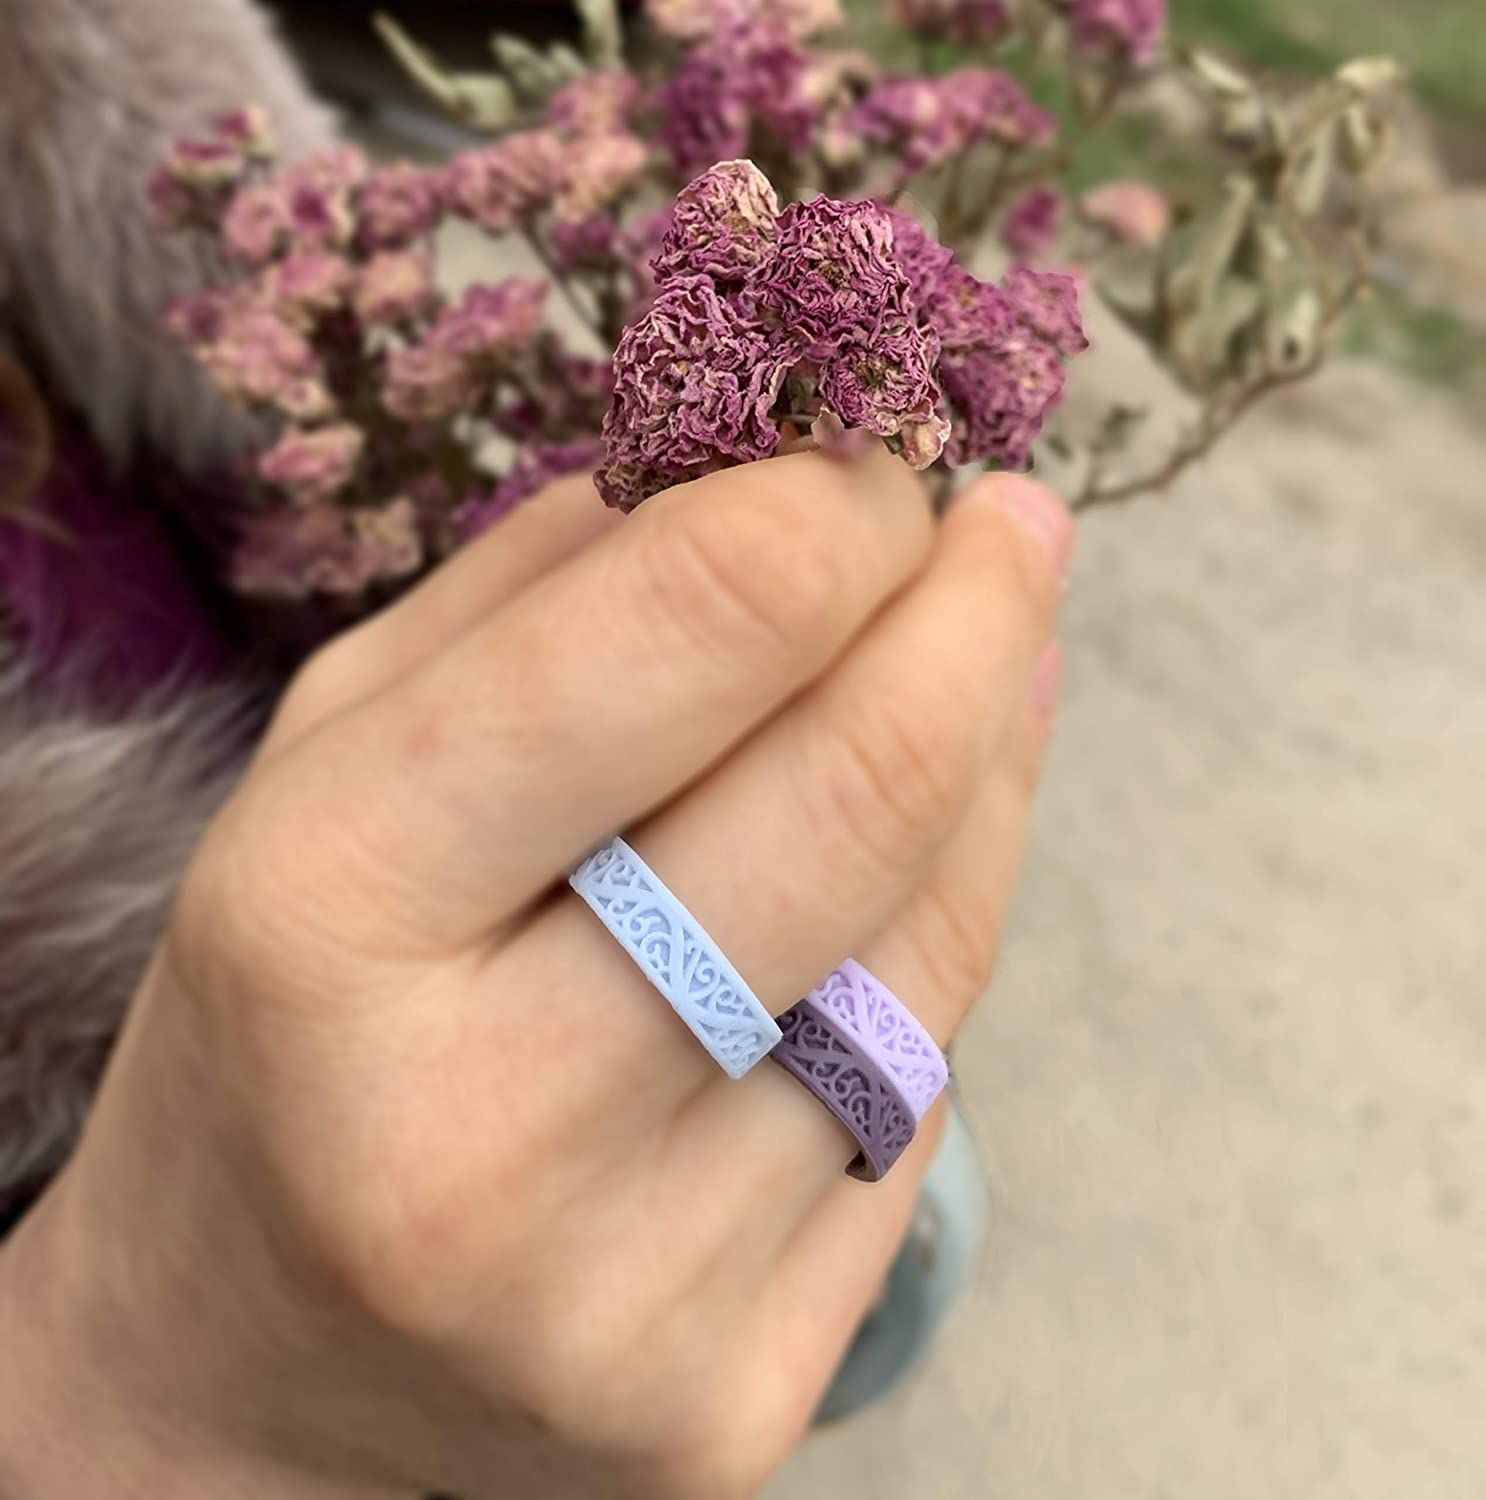 from The Latest Artist Design Innovations to Leading-Edge Comfort Leading Brand KAUAI Silicone Wedding Ring for Women Pro-Athletic Ring /& Kauai Elegance Rings Collection